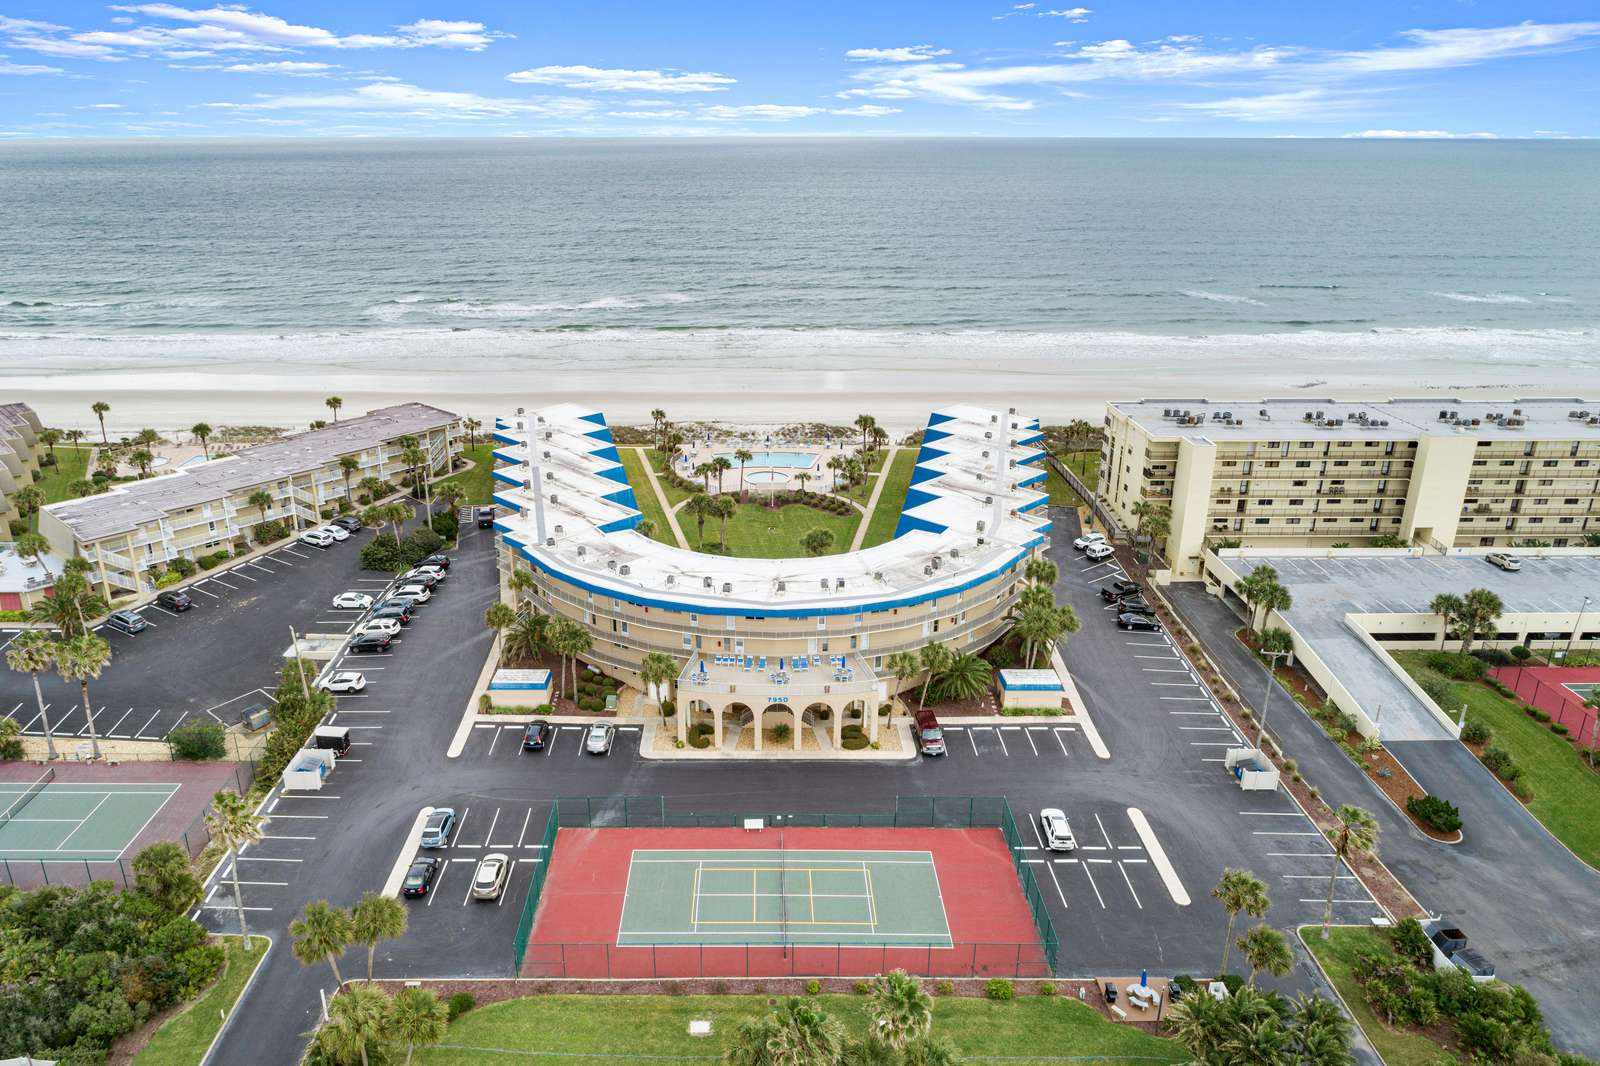 Aerial with view of Tennis/Pickle Ball Court